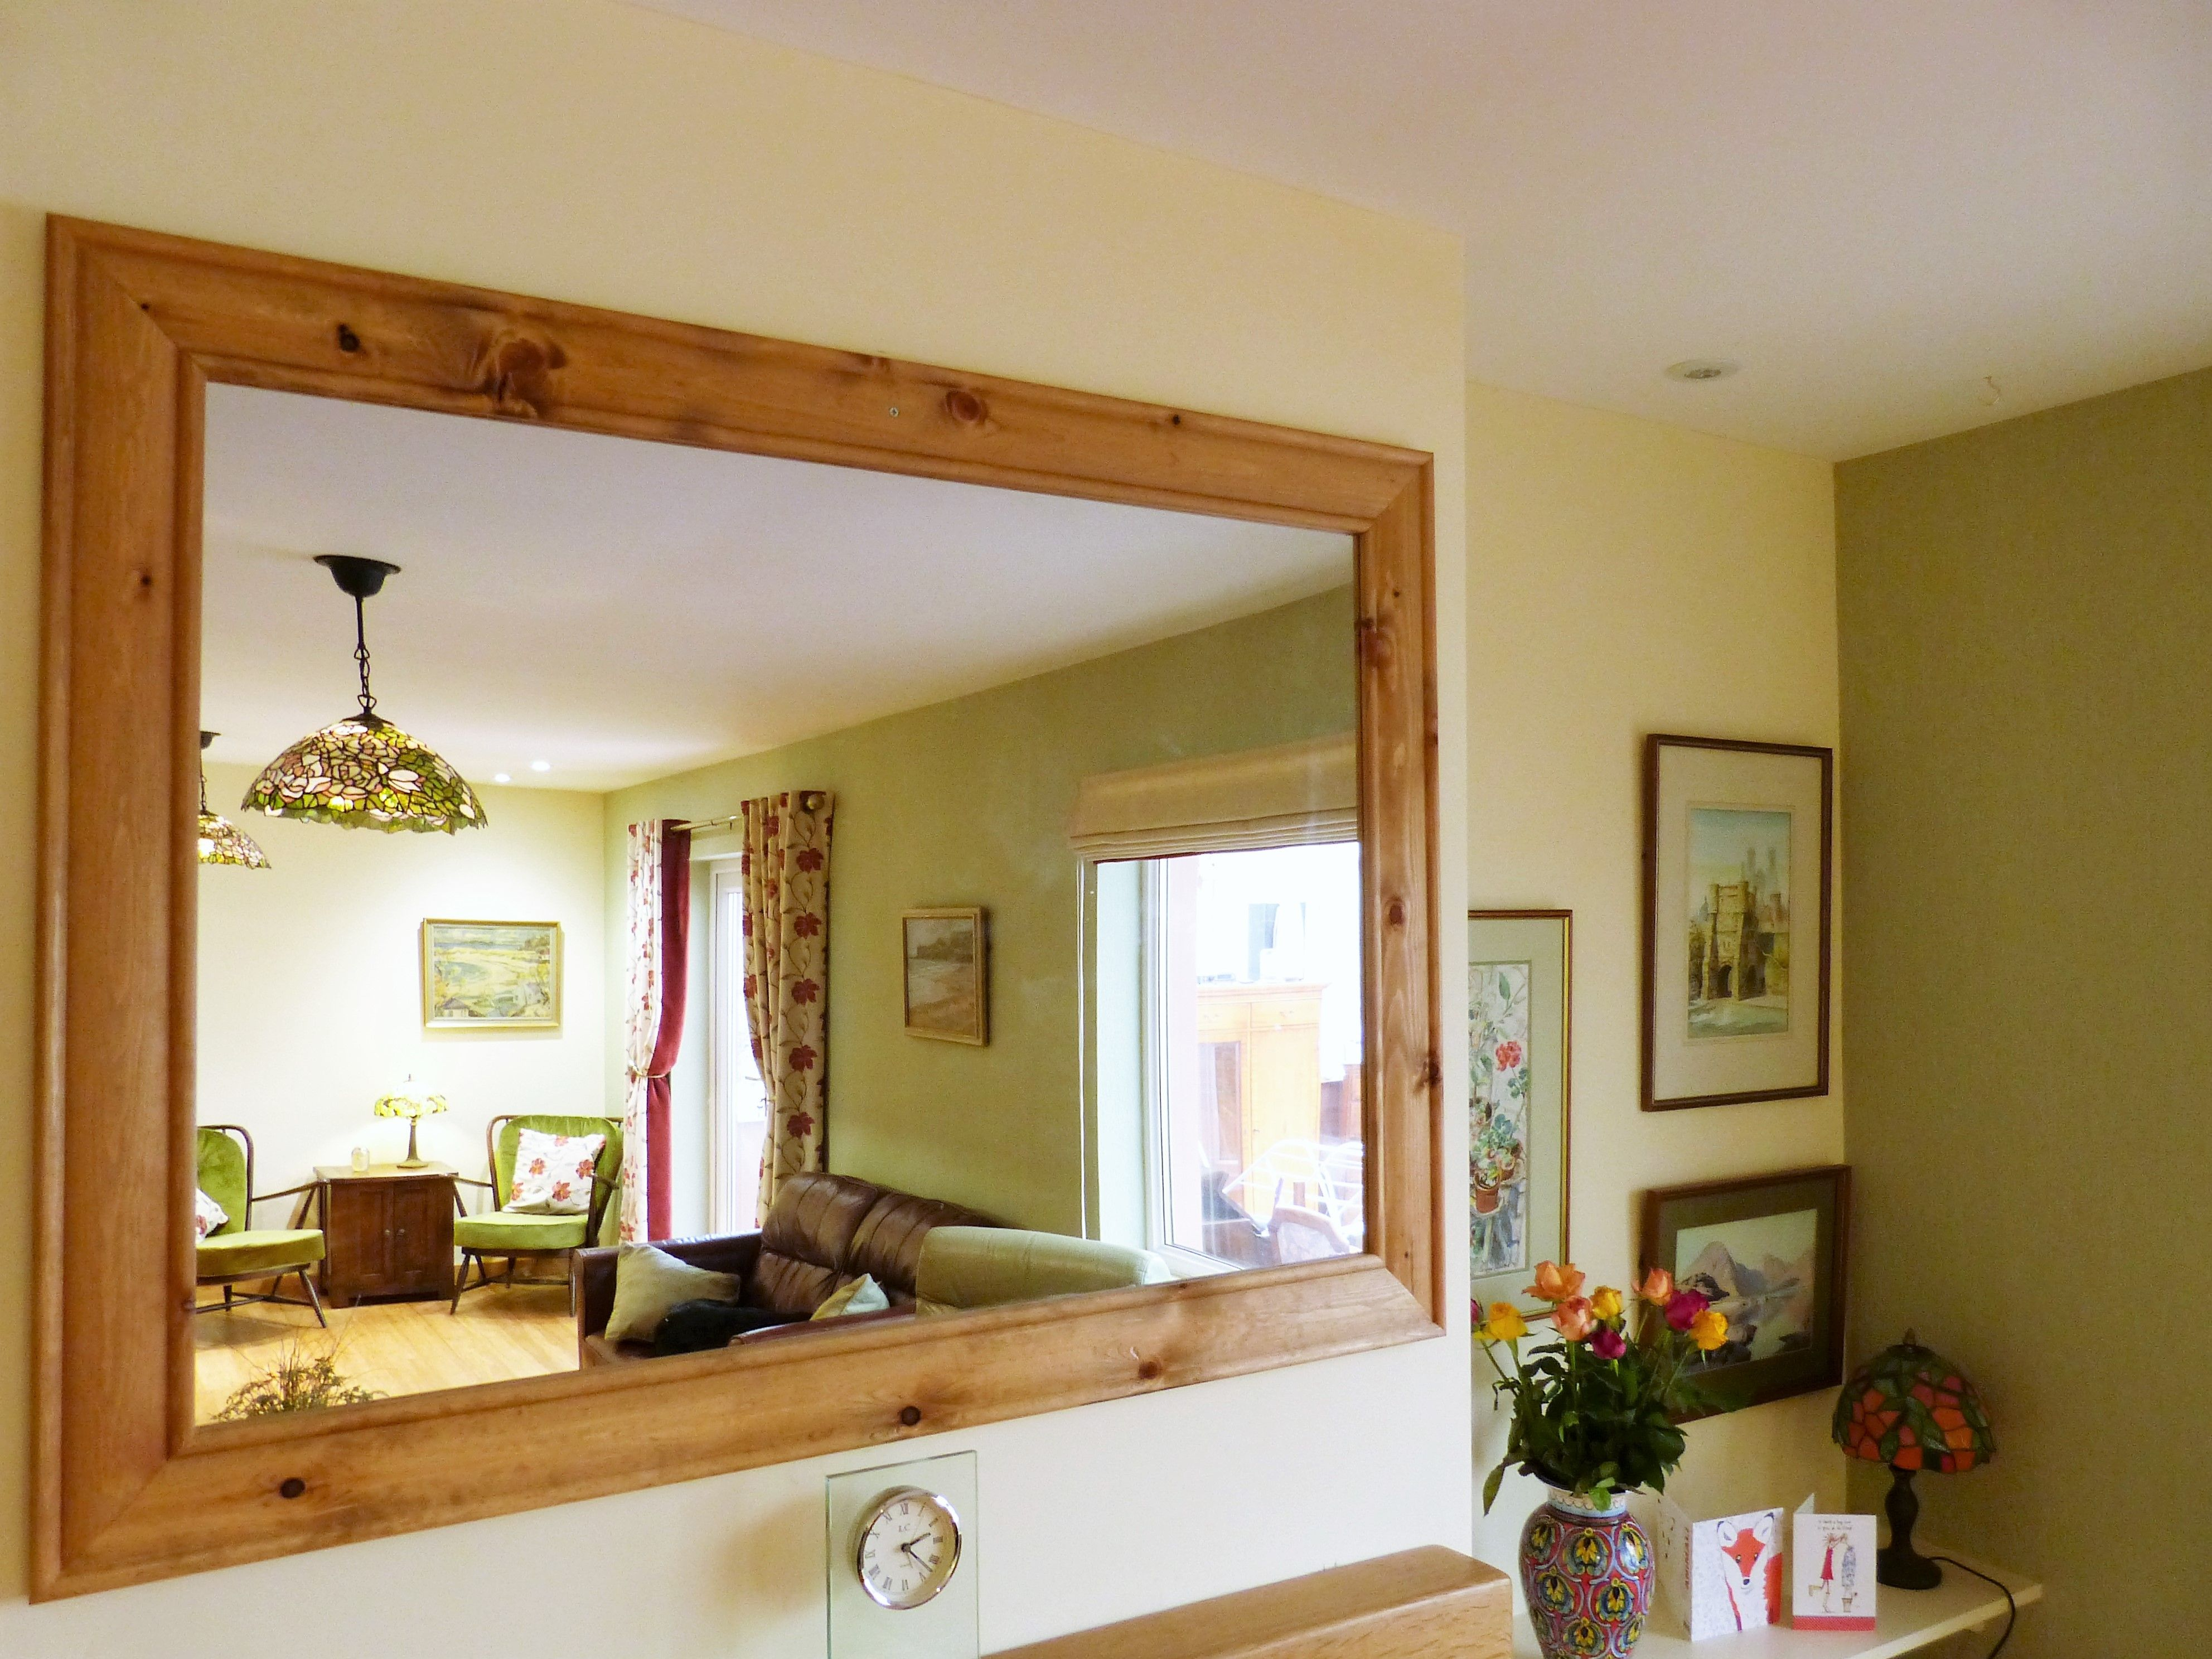 Room with a view , makeover by Anne Sowerby Sassy Property Styling